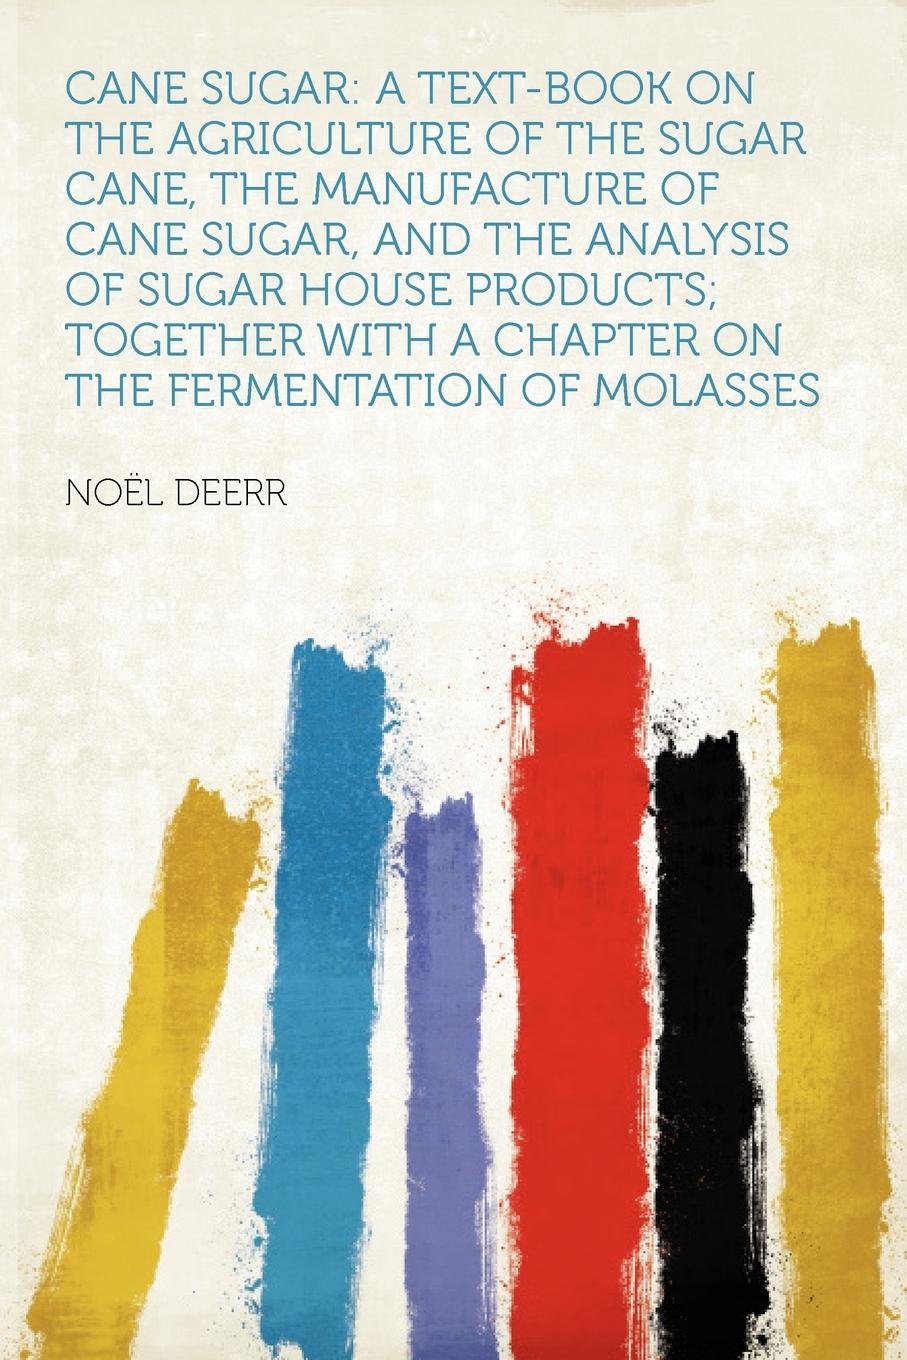 Cane Sugar: a Text-book on the Agriculture of the Sugar Cane, the Manufacture of Cane Sugar, and the Analysis of Sugar House Products; Together With a Chapter on the Fermentation of Molasses pdf epub